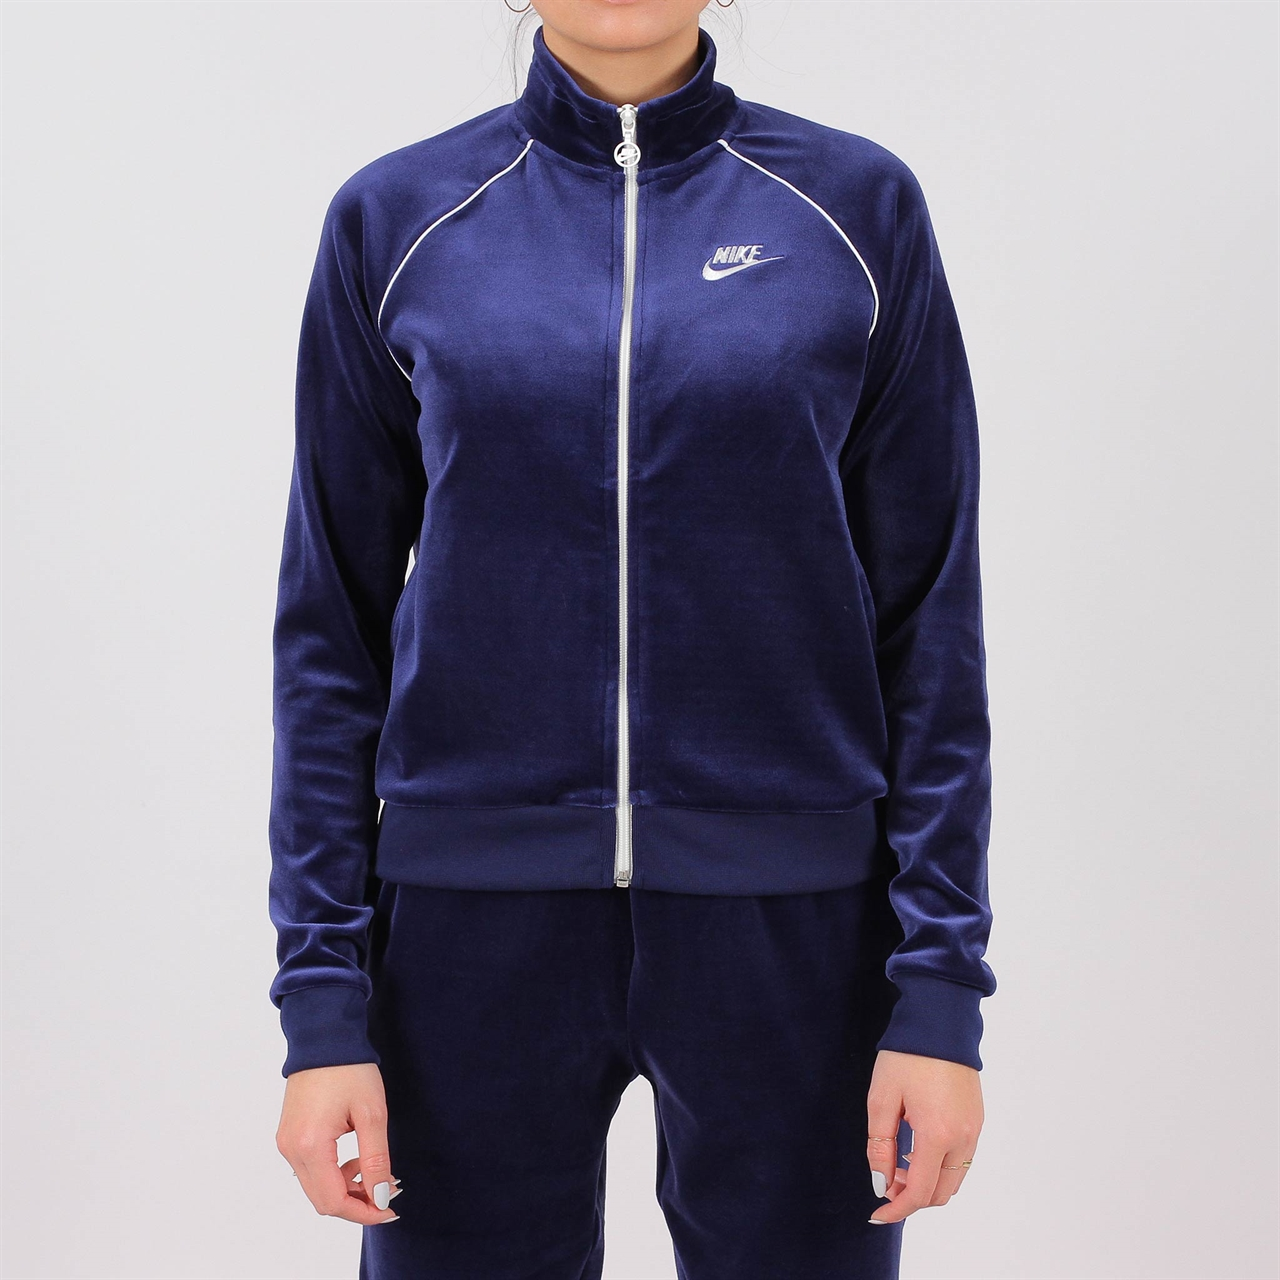 675ac5b02e1b Shelta - Nike Womens Velour Track Jacket Blue (AQ7977-478)